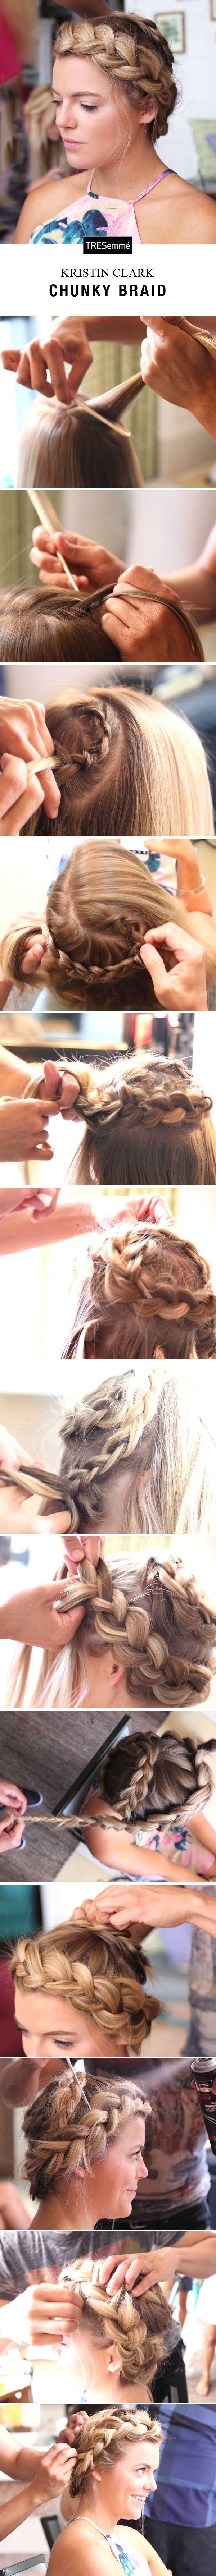 Grab a friend & try a TRES-styled Chunky Braid with Kristin Clark! 1) Spray 2nd day hair @ roots with Fresh Start Dry Shampoo to refresh. 2) Start @ center of crown. Dutch braid in a spiral. Stay in the crown area, saving hair at hairline for 2nd braid. 3) Braid into a circle & pin ends under the braid itself. 4) Start 2nd Dutch braid by right temple, near 1st braid. 5) Continue braiding around head & secure ends under braid once you make it around. 6) Finish with Perfectly (un) Done…